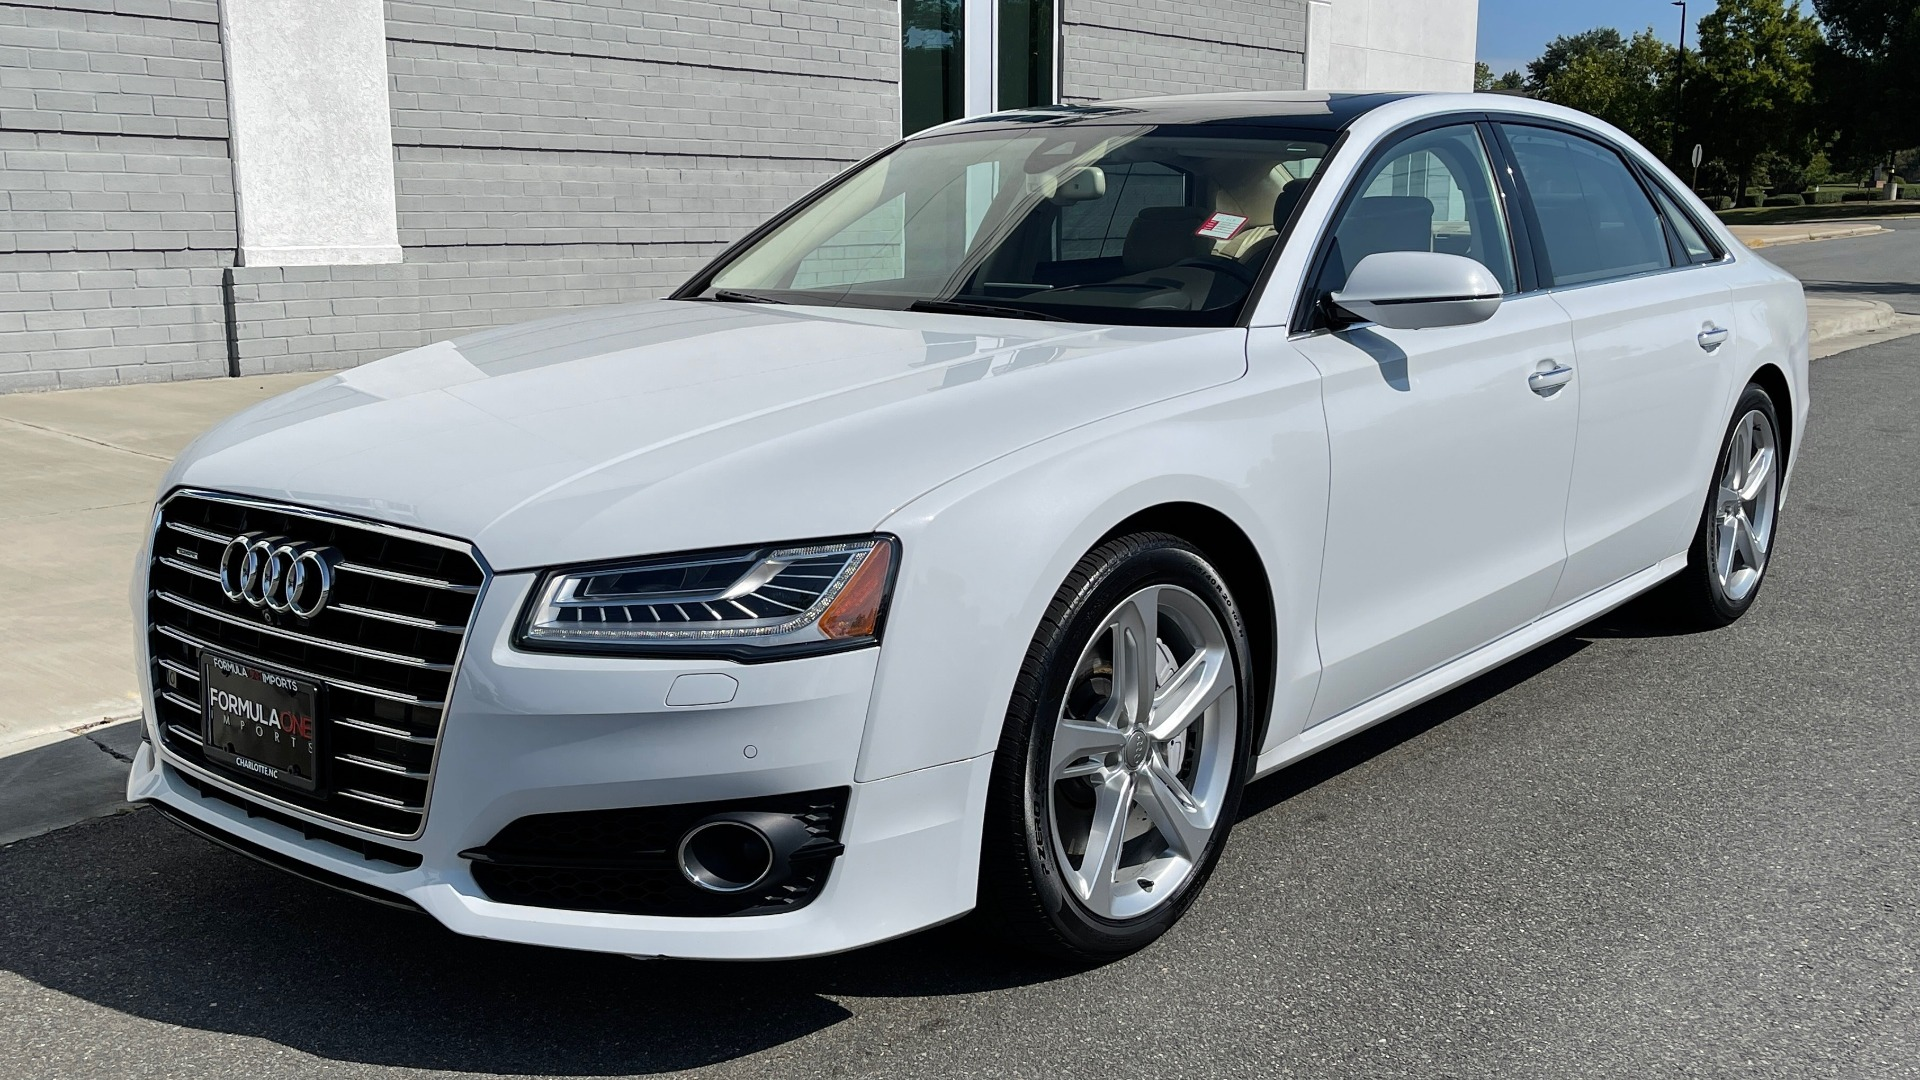 Used 2018 Audi A8 L SPORT 4.0T / EXECUTIVE PKG / NAV / BOSE / SUNROOF / REARVIEW for sale Sold at Formula Imports in Charlotte NC 28227 2